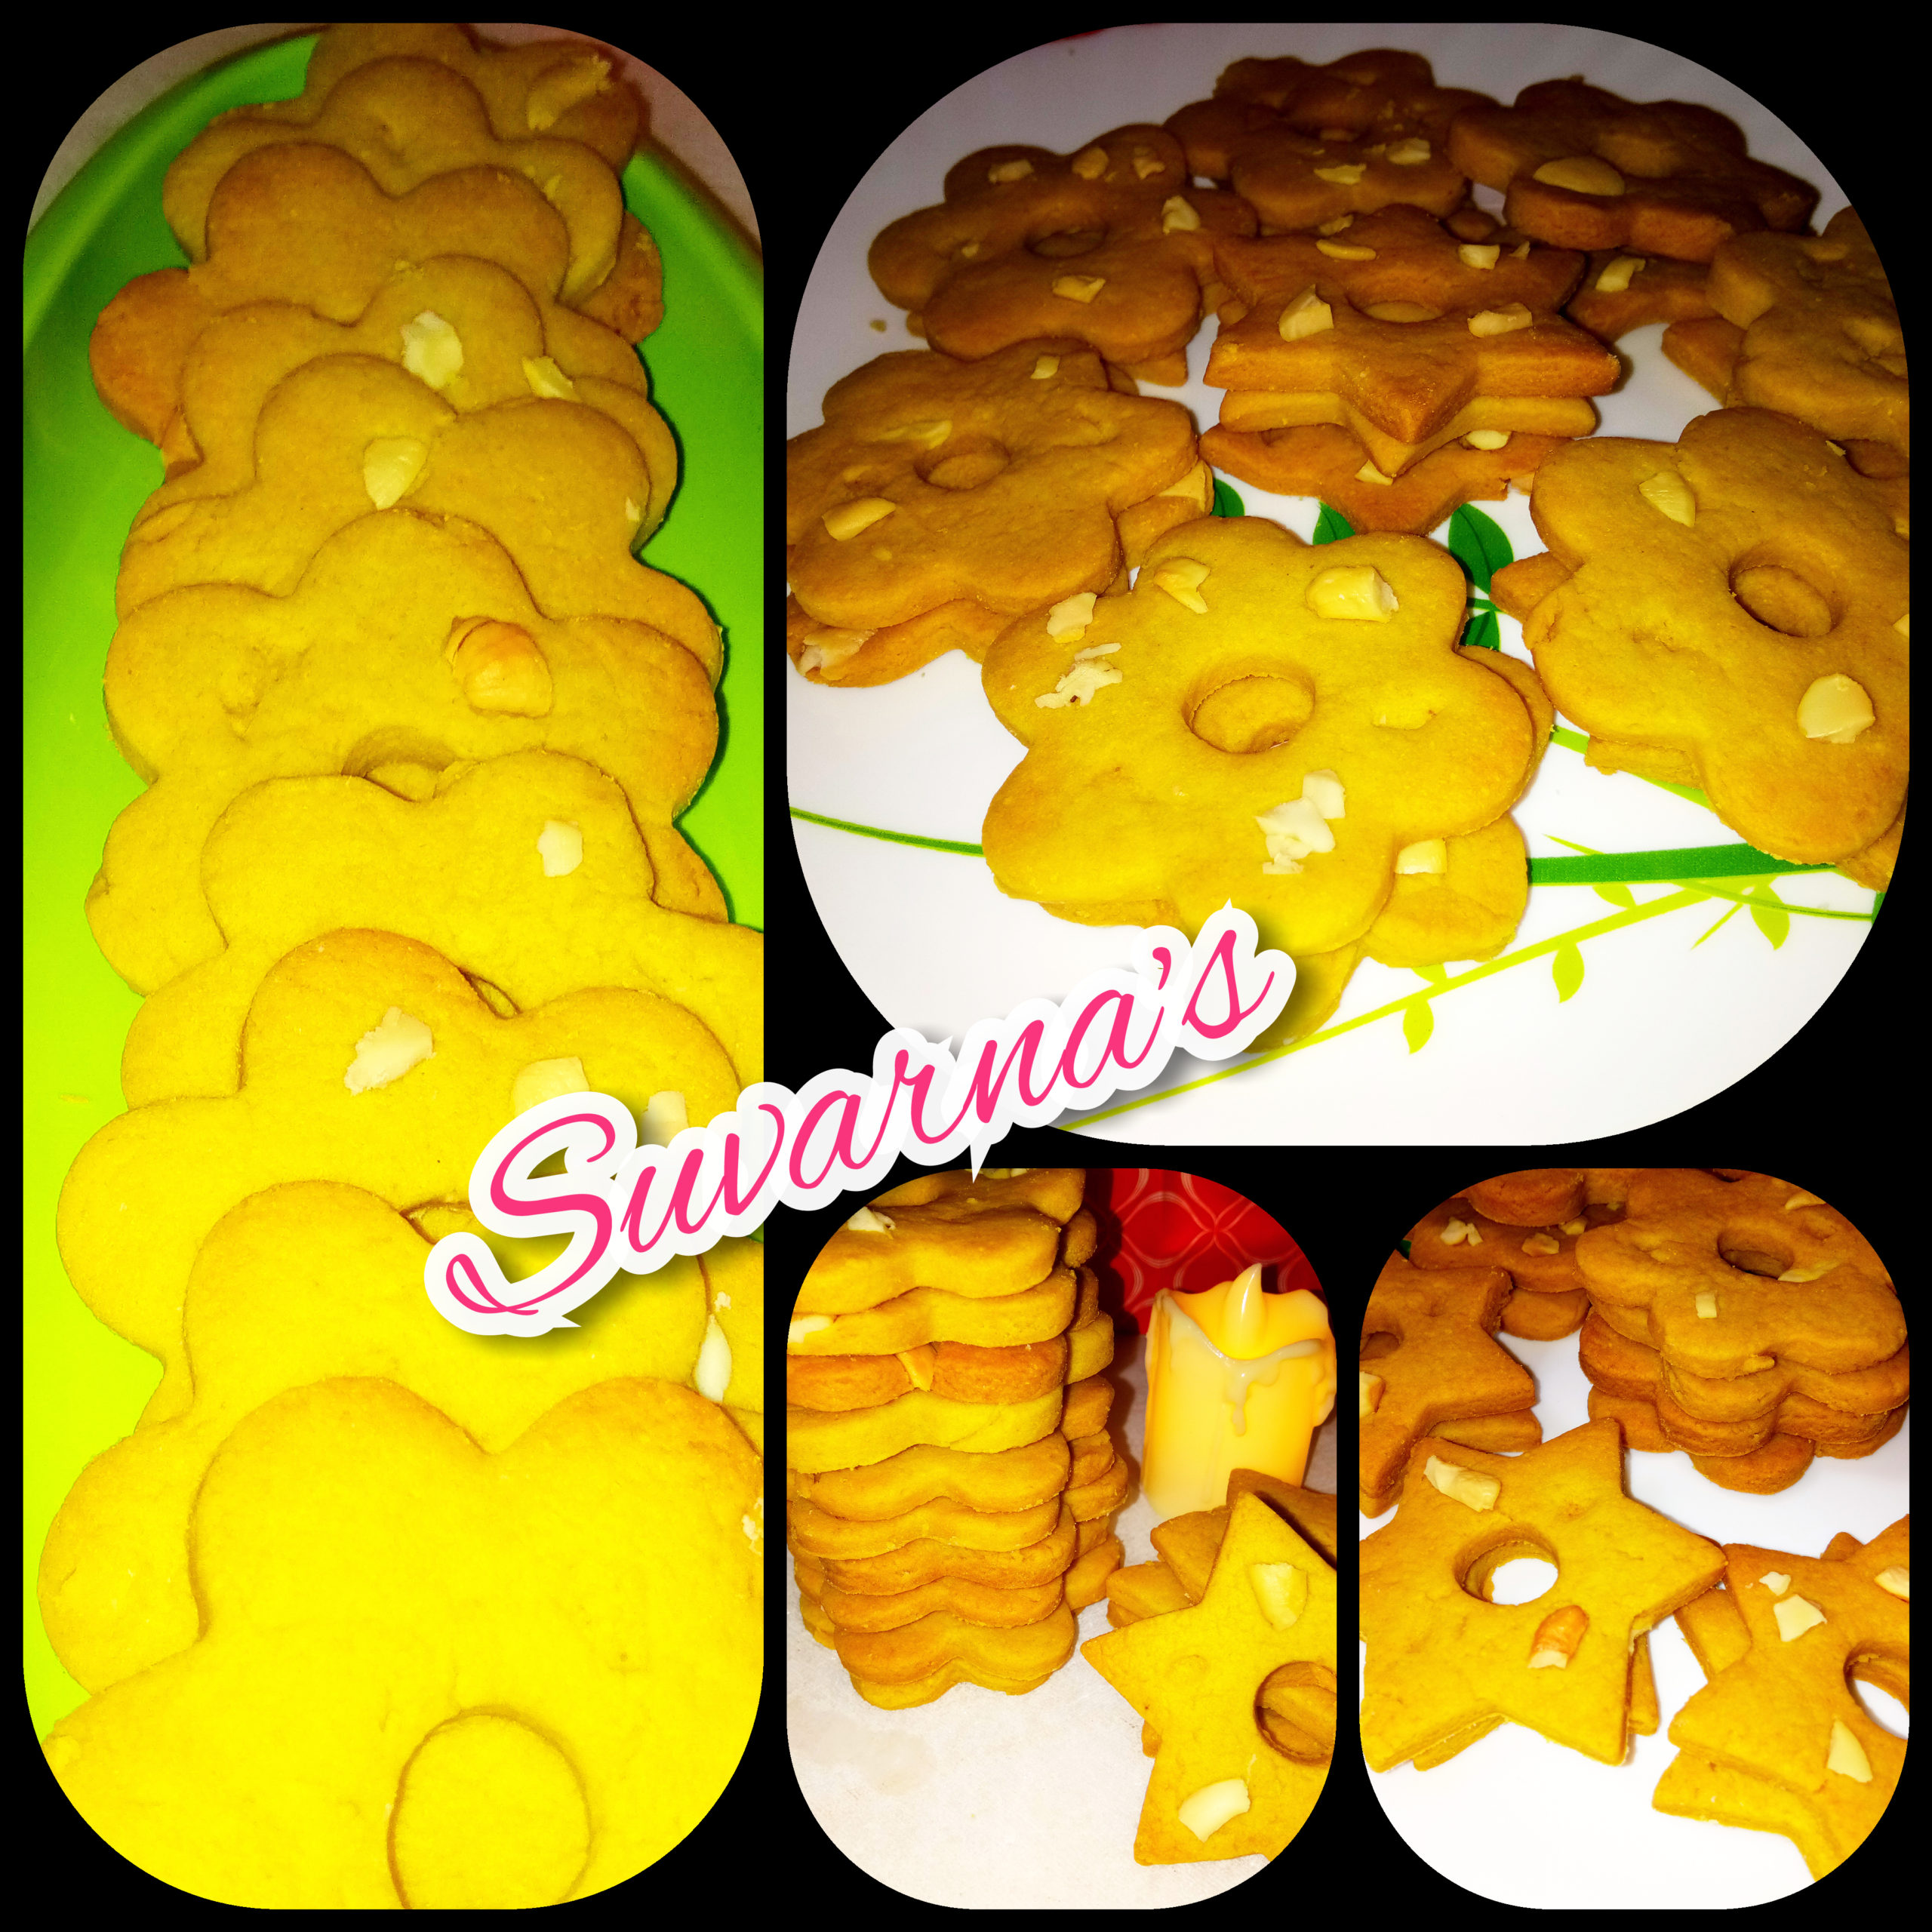 Wheat Cookies Designs, Images, Price Near Me